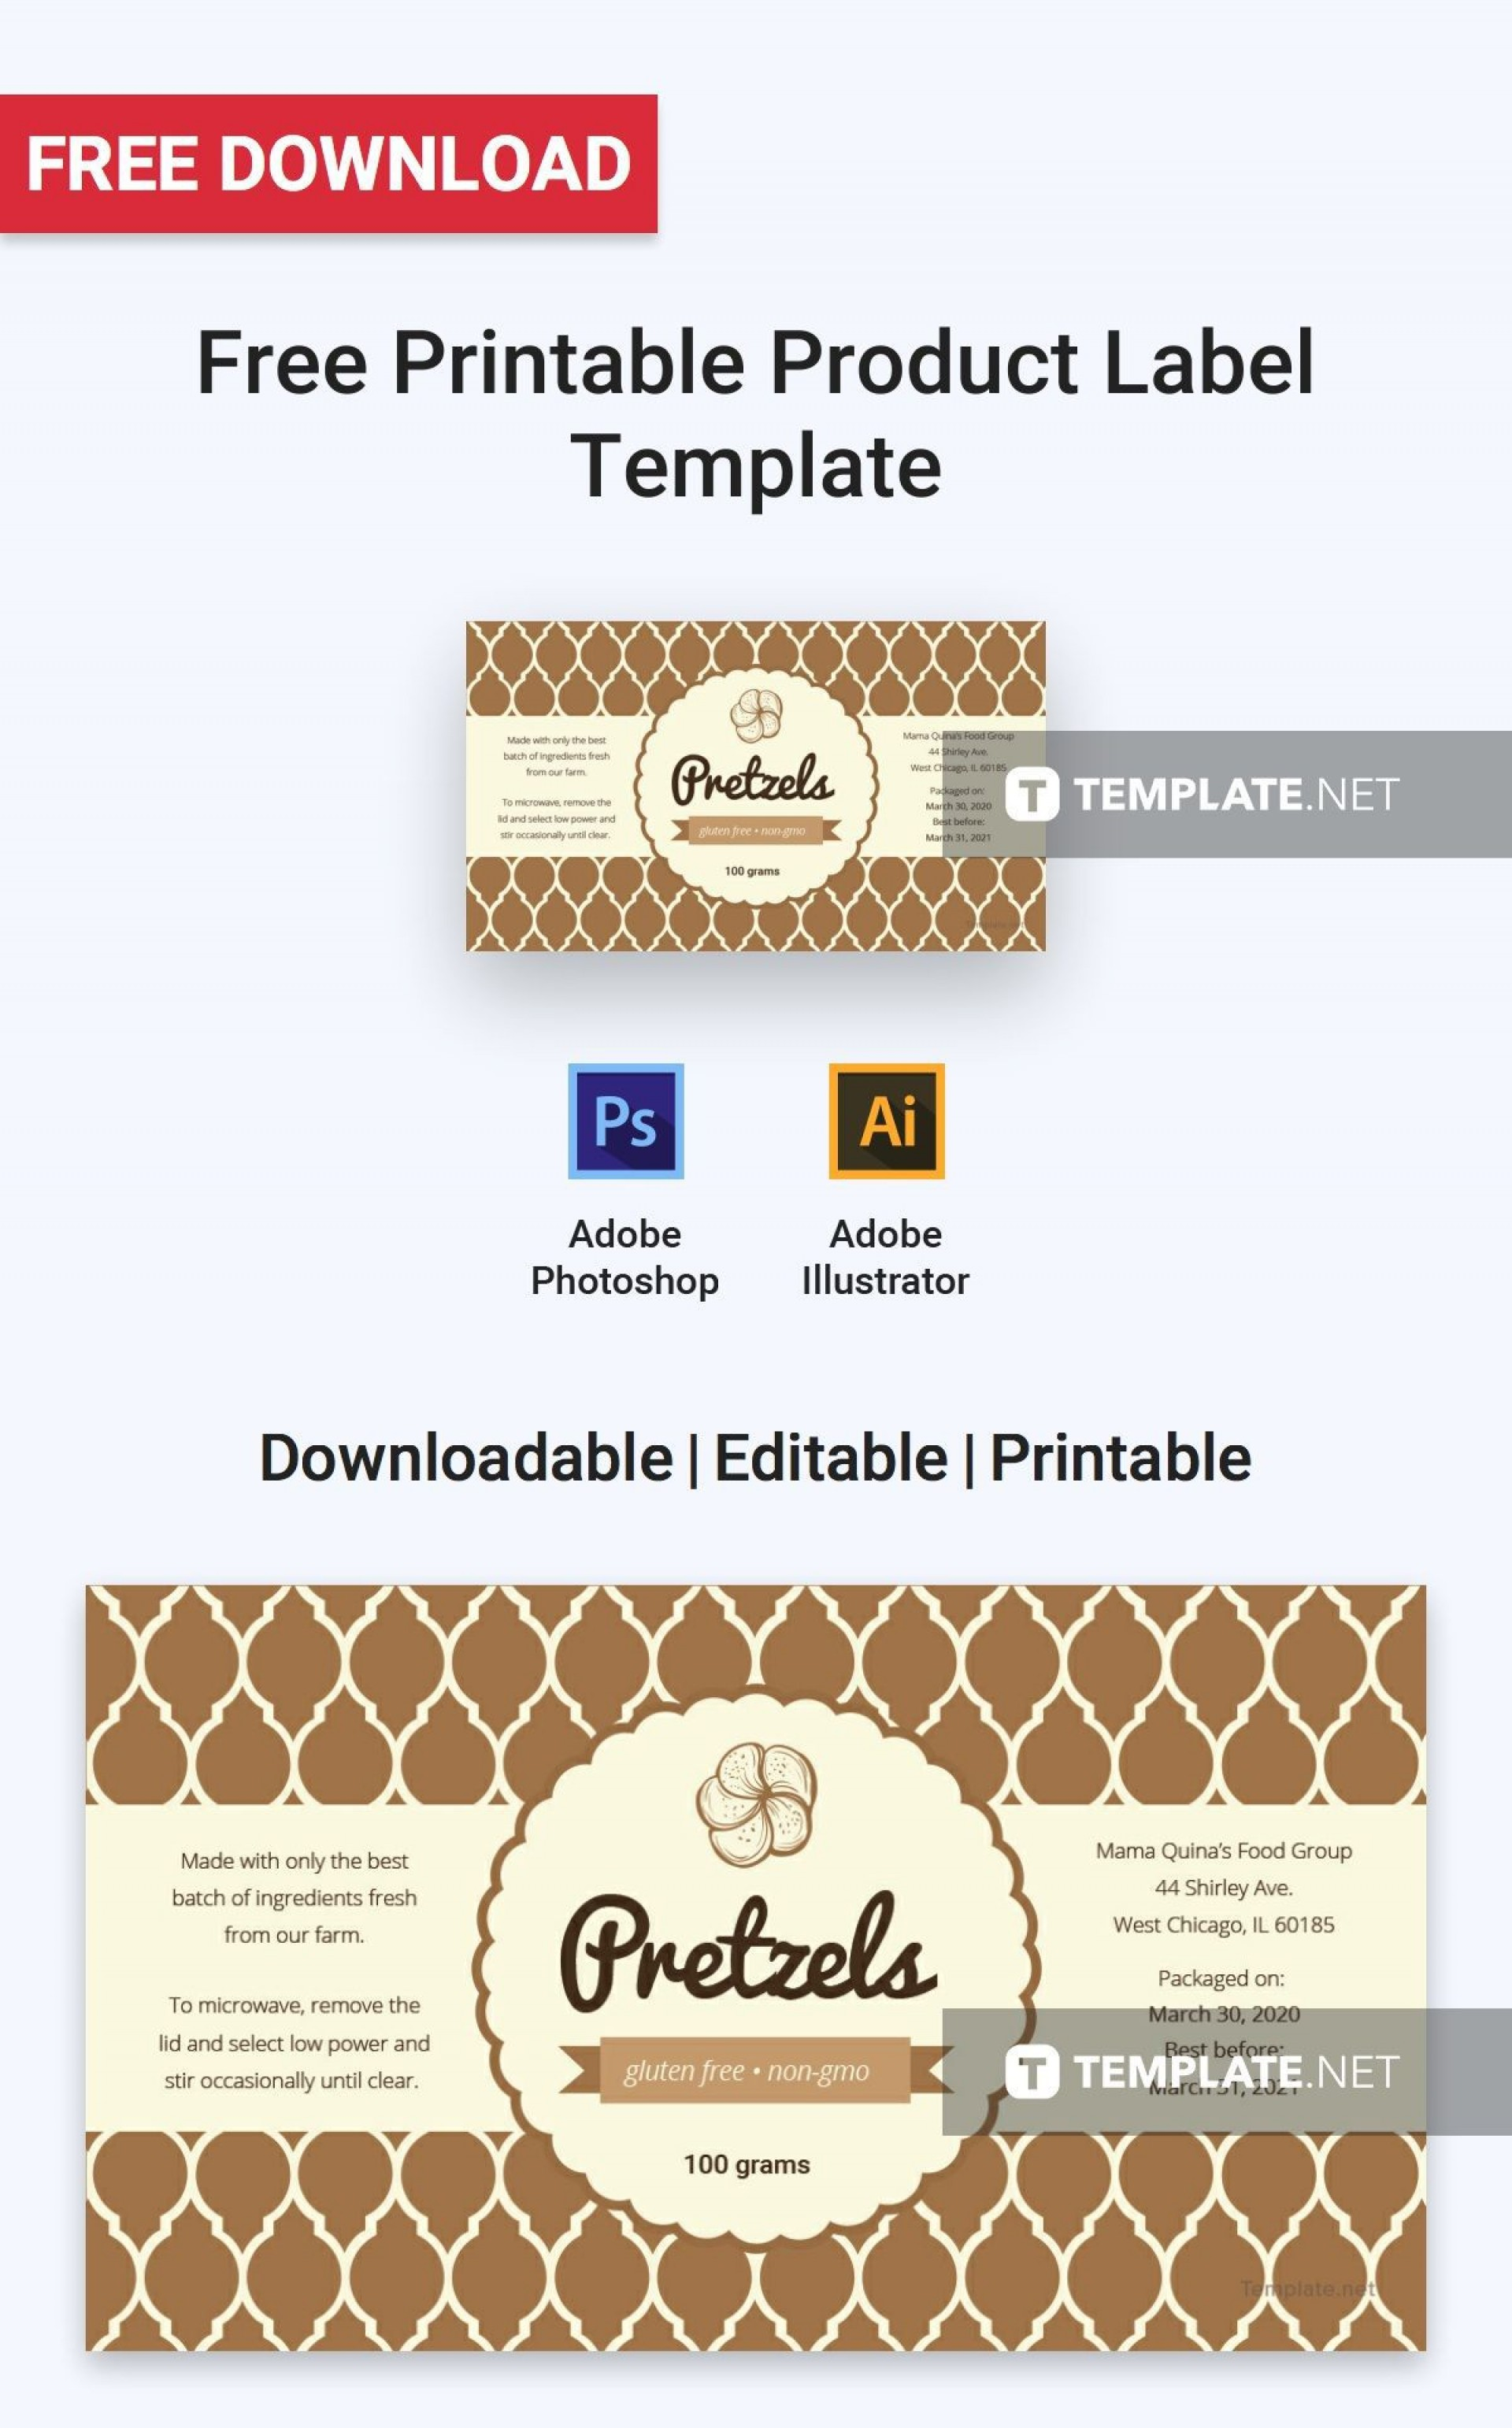 001 Amazing Free Food Label Design Template High Def  Templates Download1920